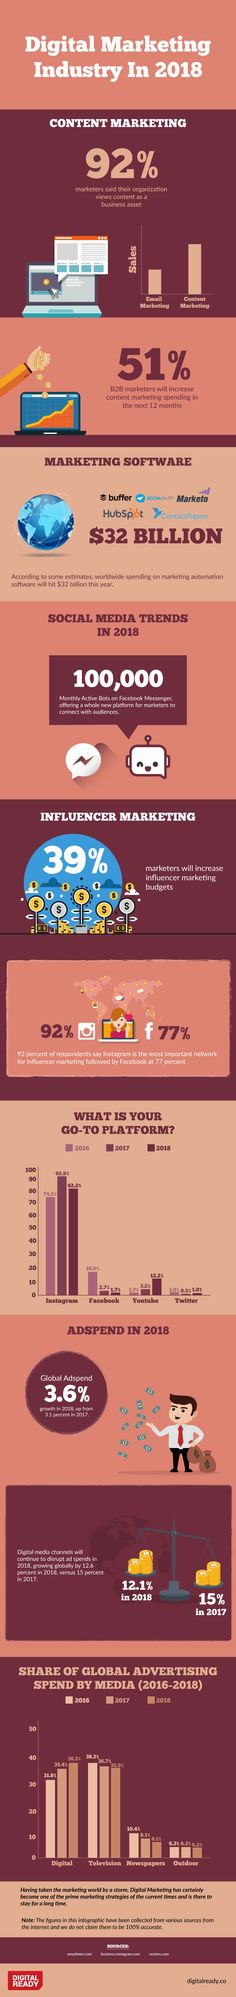 Digital Marketing Industry in 2018 - #Infographic